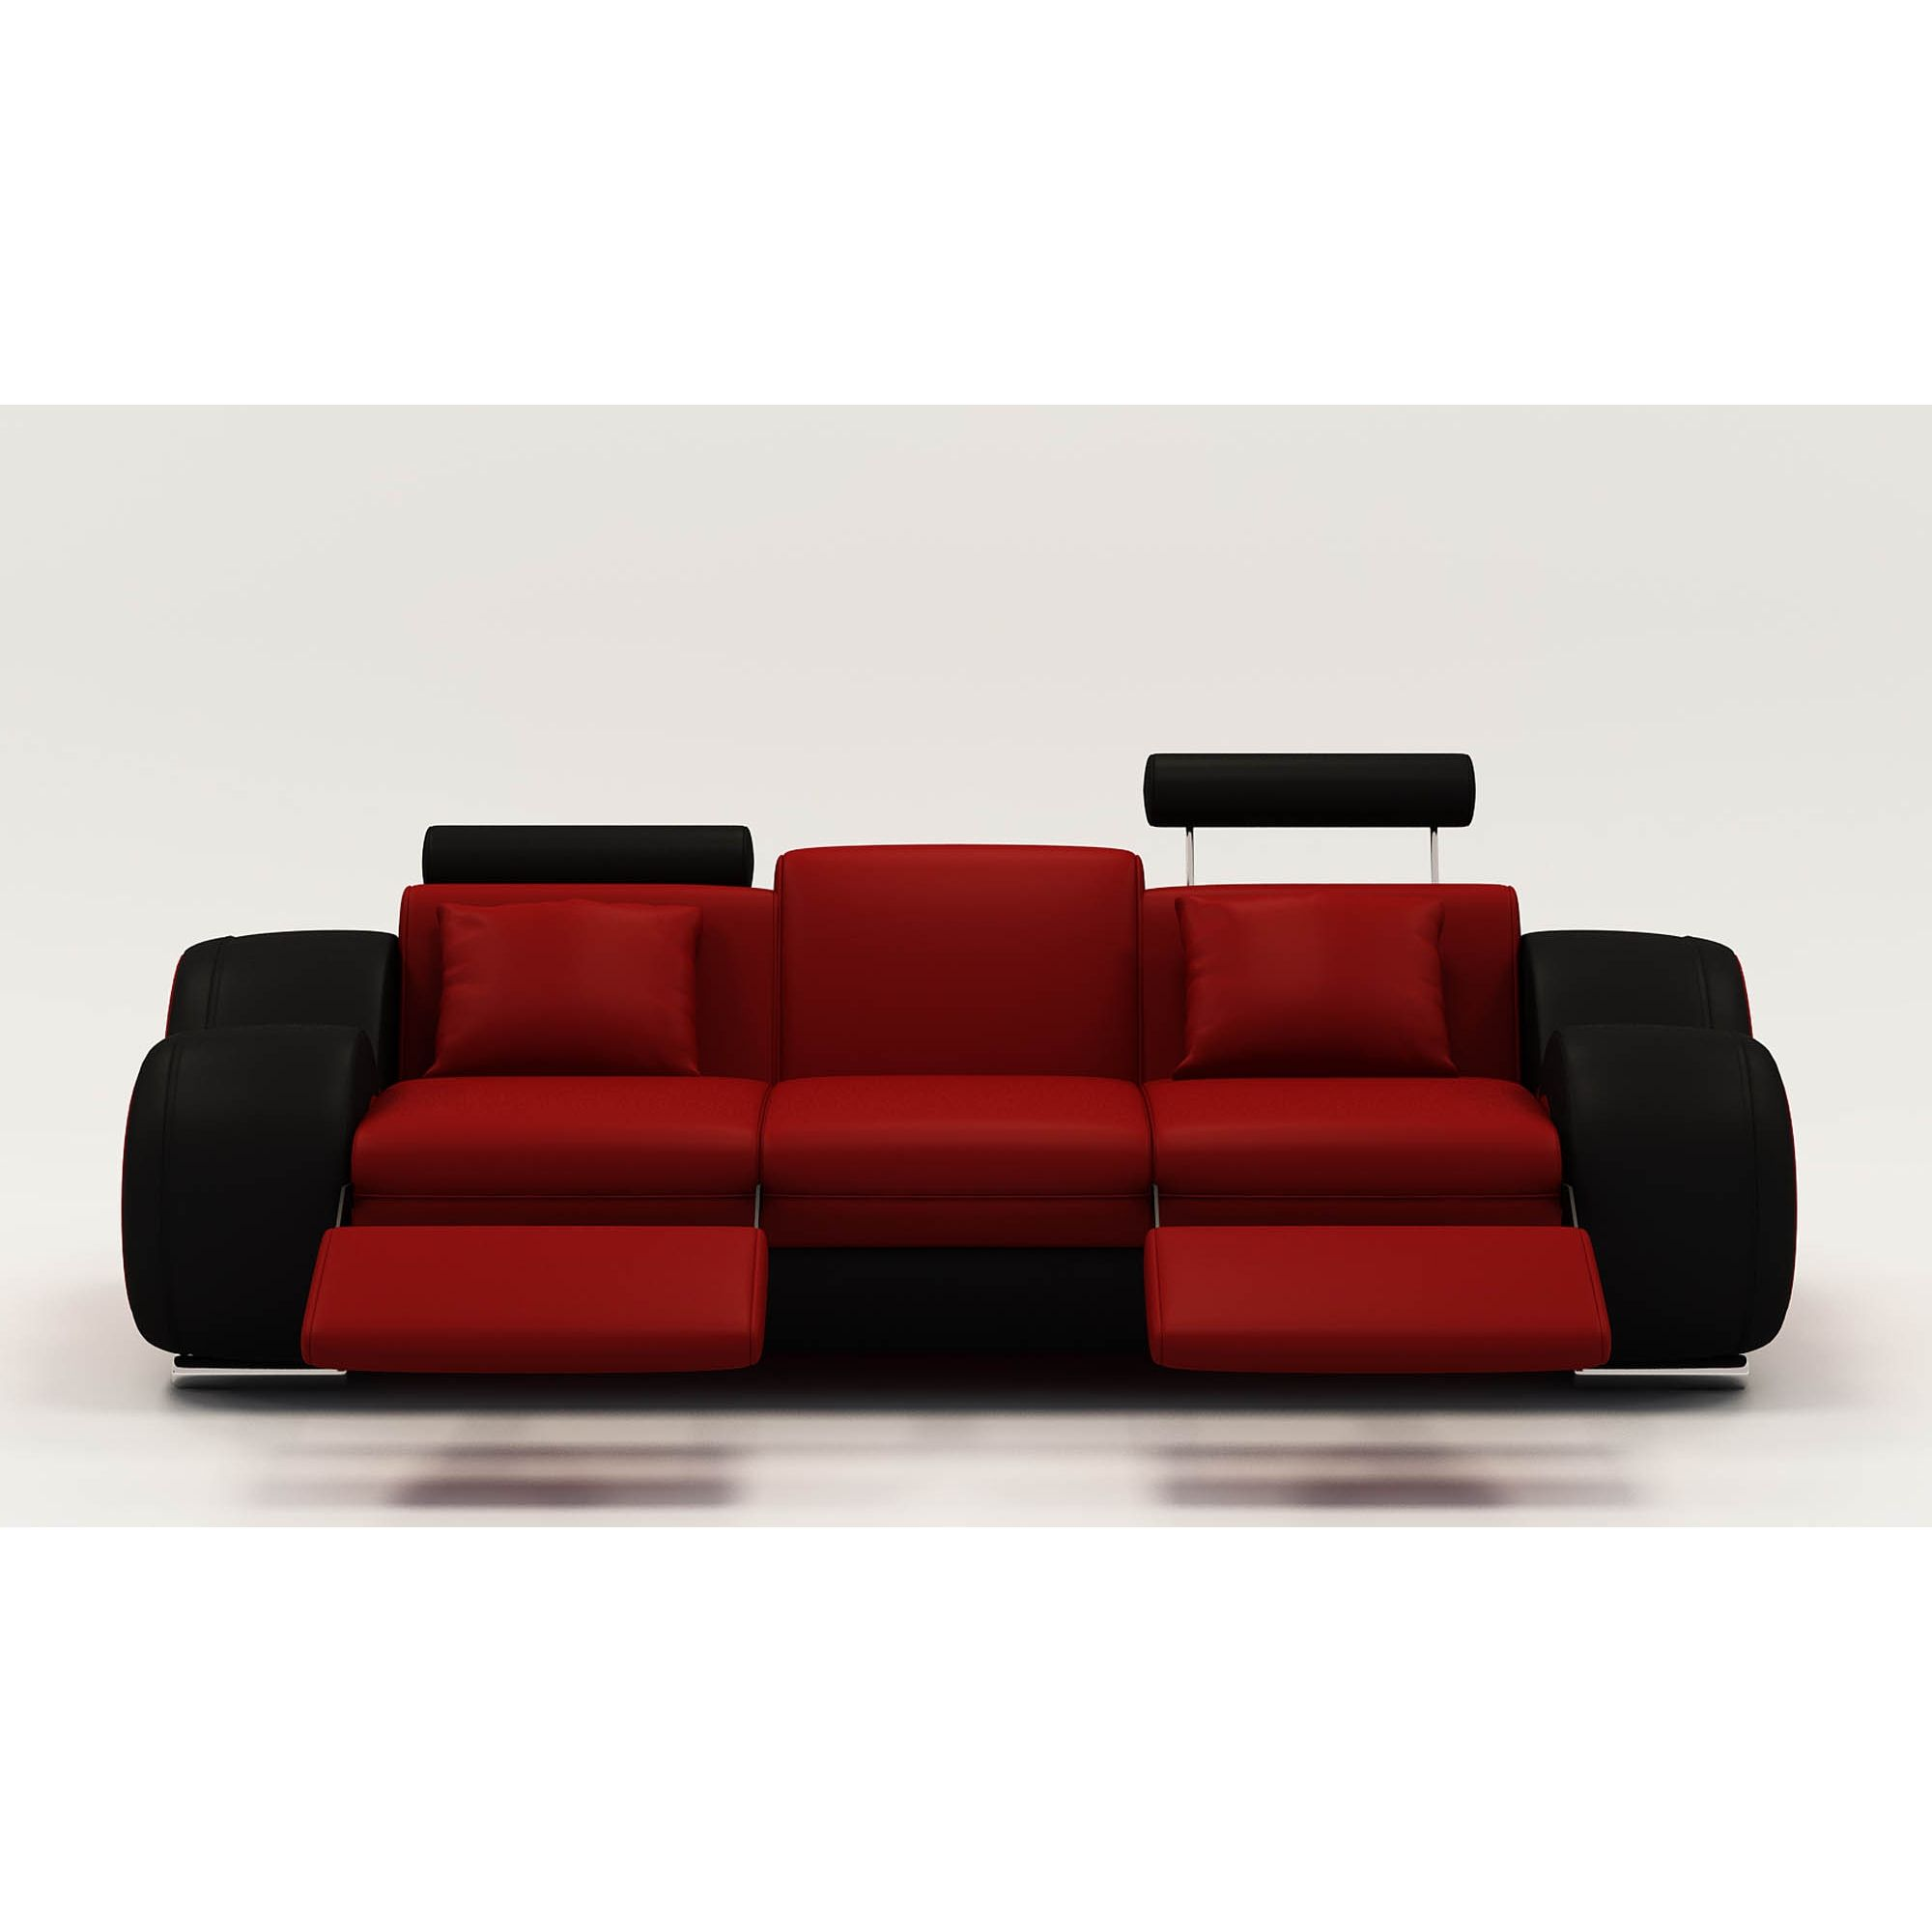 Deco in paris 7 canape design 3 places cuir rouge et noir tetieres relax os - Canape cuir moderne design ...